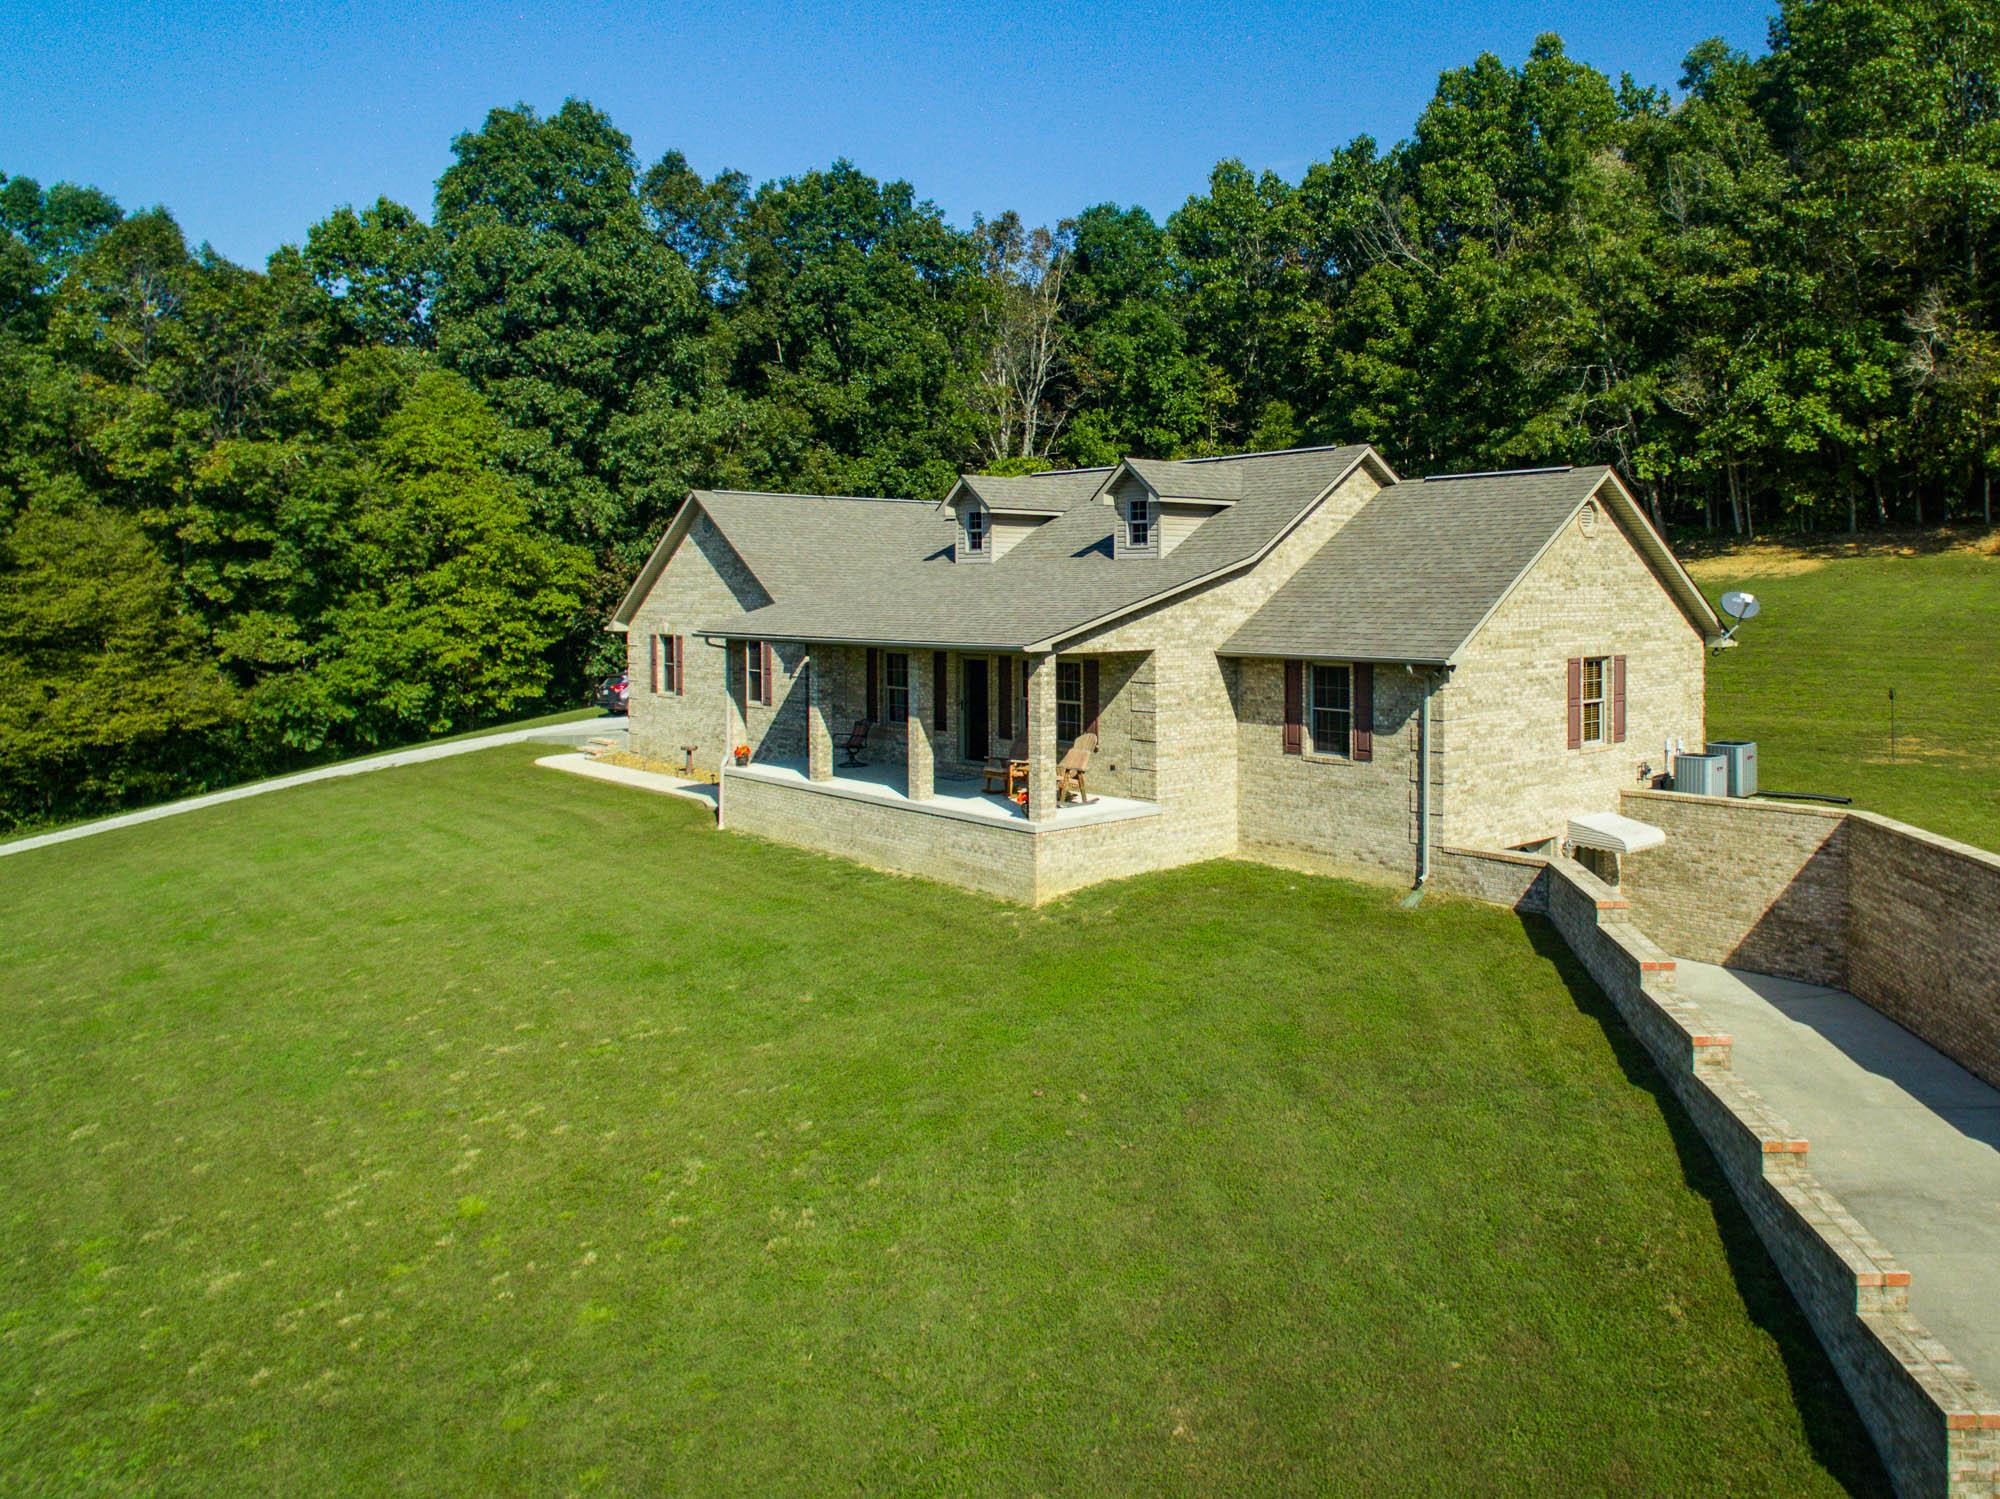 914 Tollie Lane, Jamestown, TN 38556 - Jamestown, TN real estate listing